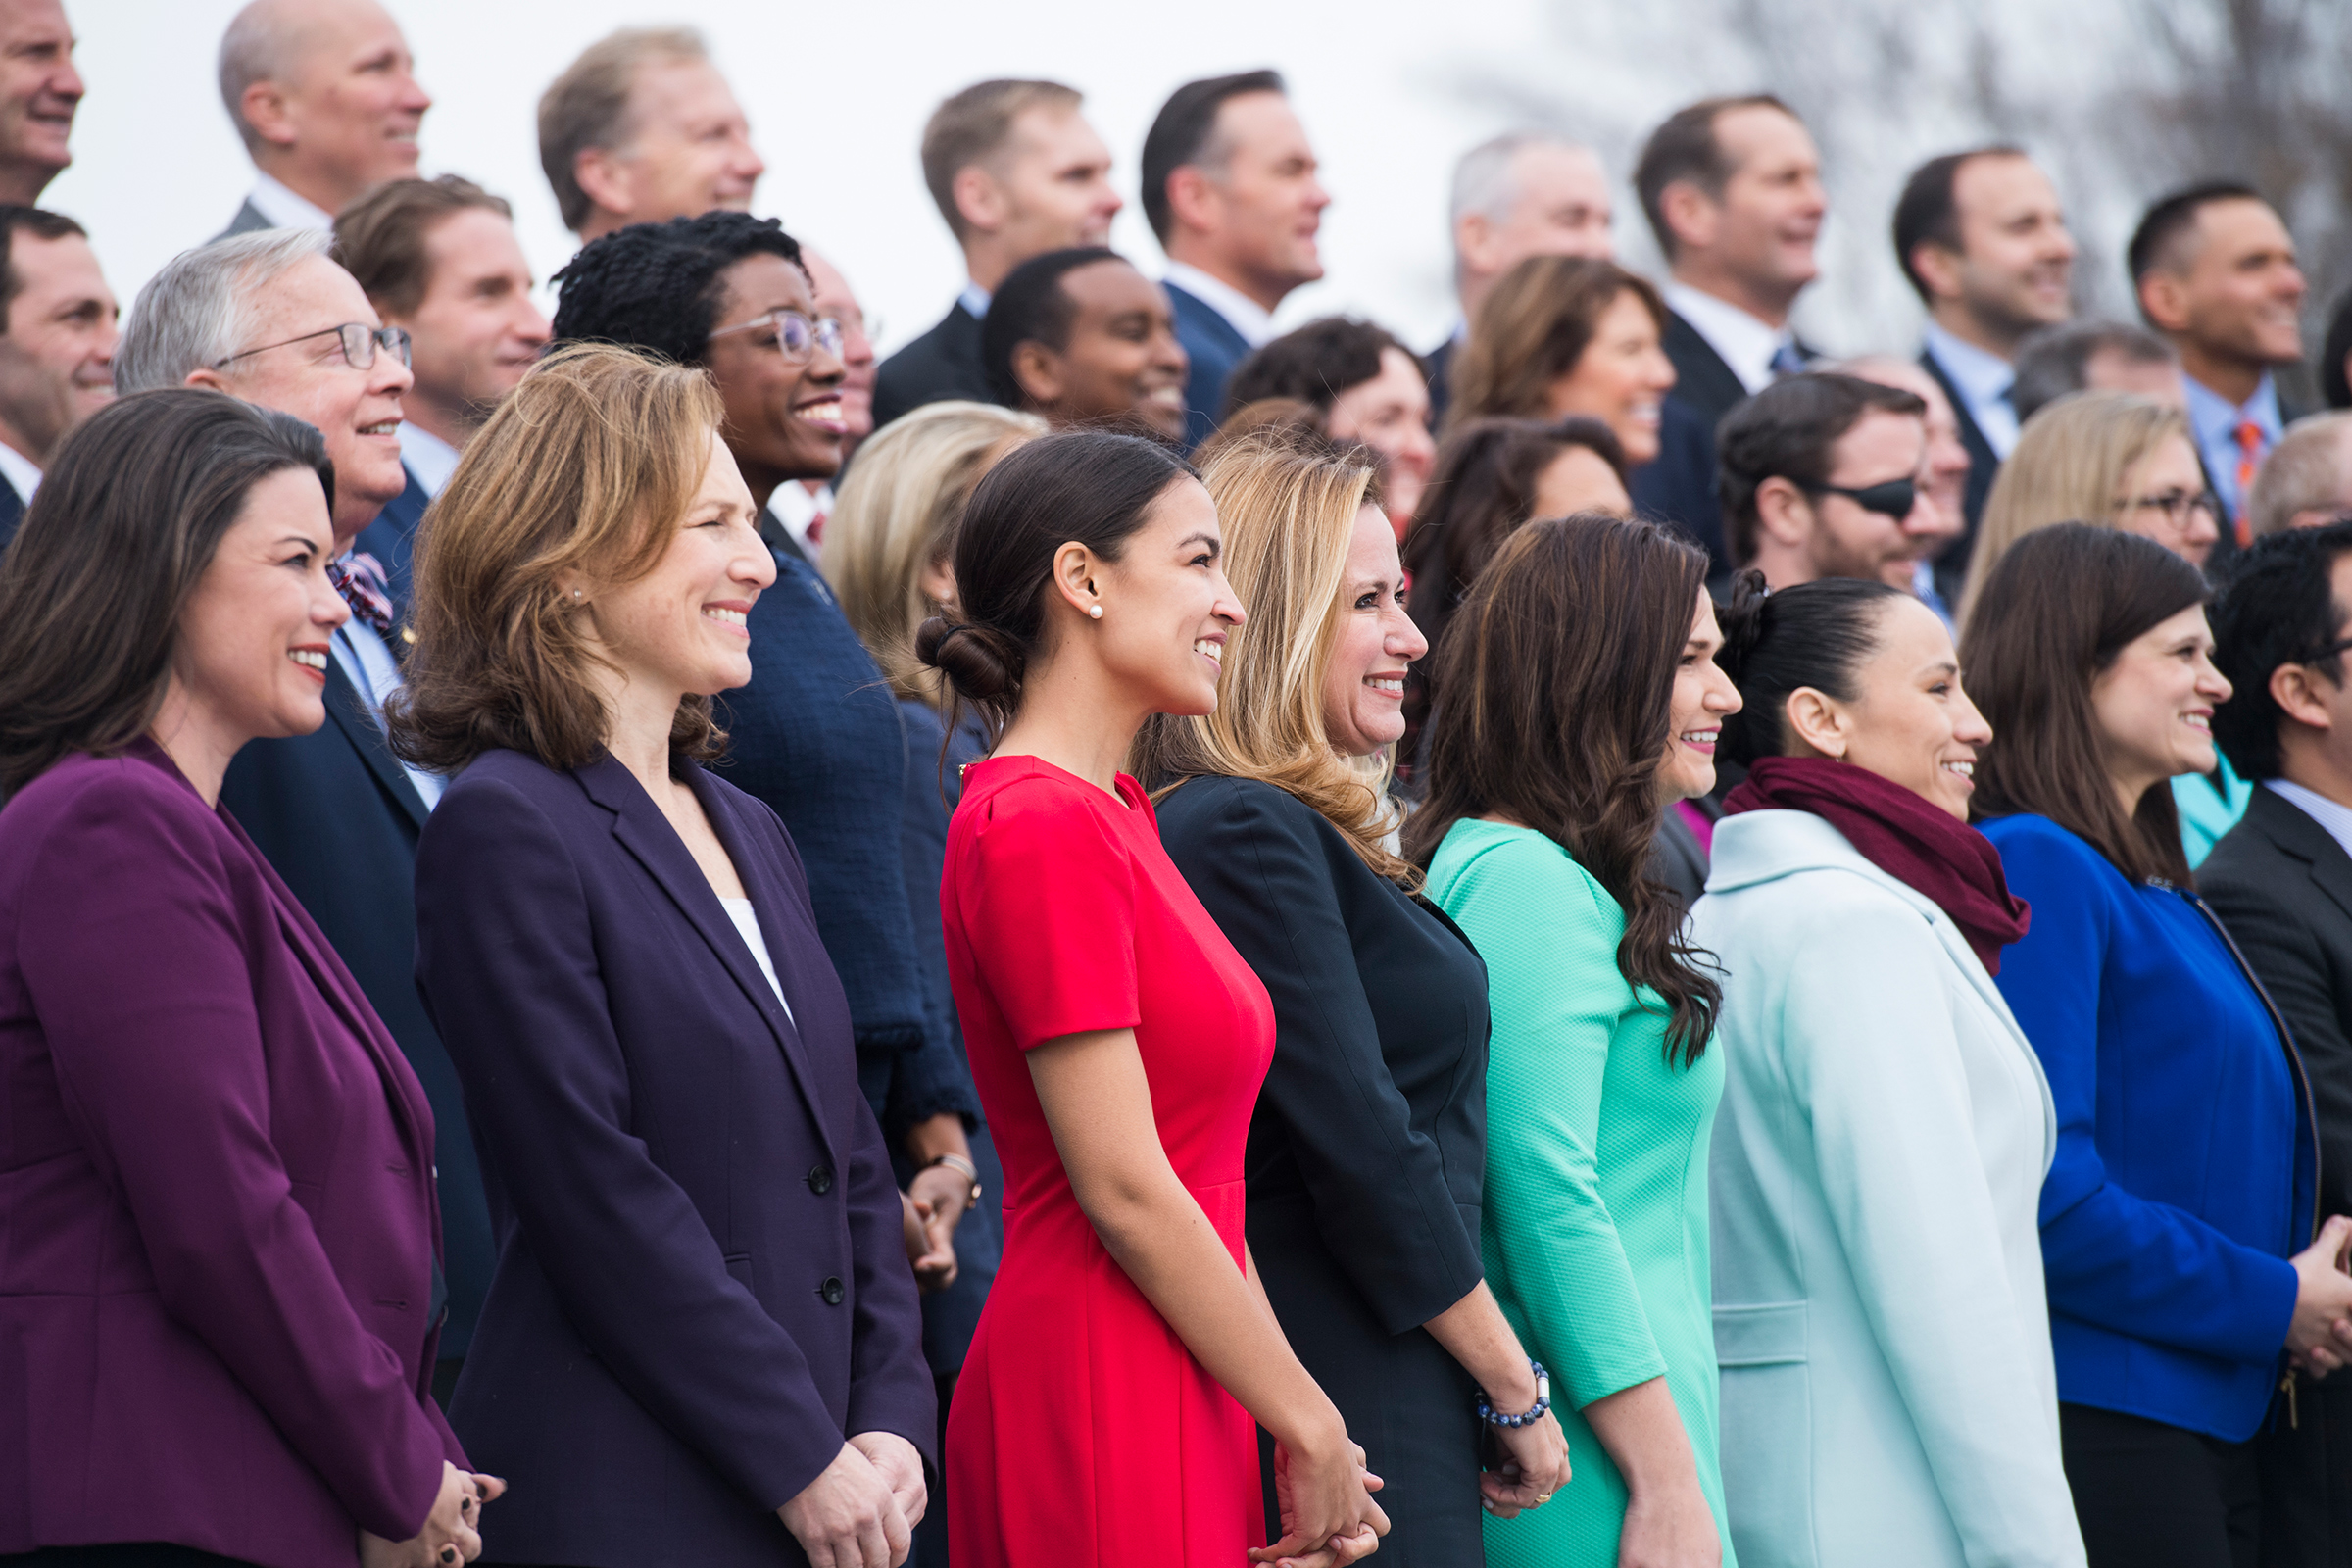 Members-elect including Alexandria Ocasio-Cortez, D-N.Y., pose for the freshman class photo of the 116th Congress on the East Front of the Capitol on Nov. 14, 2018